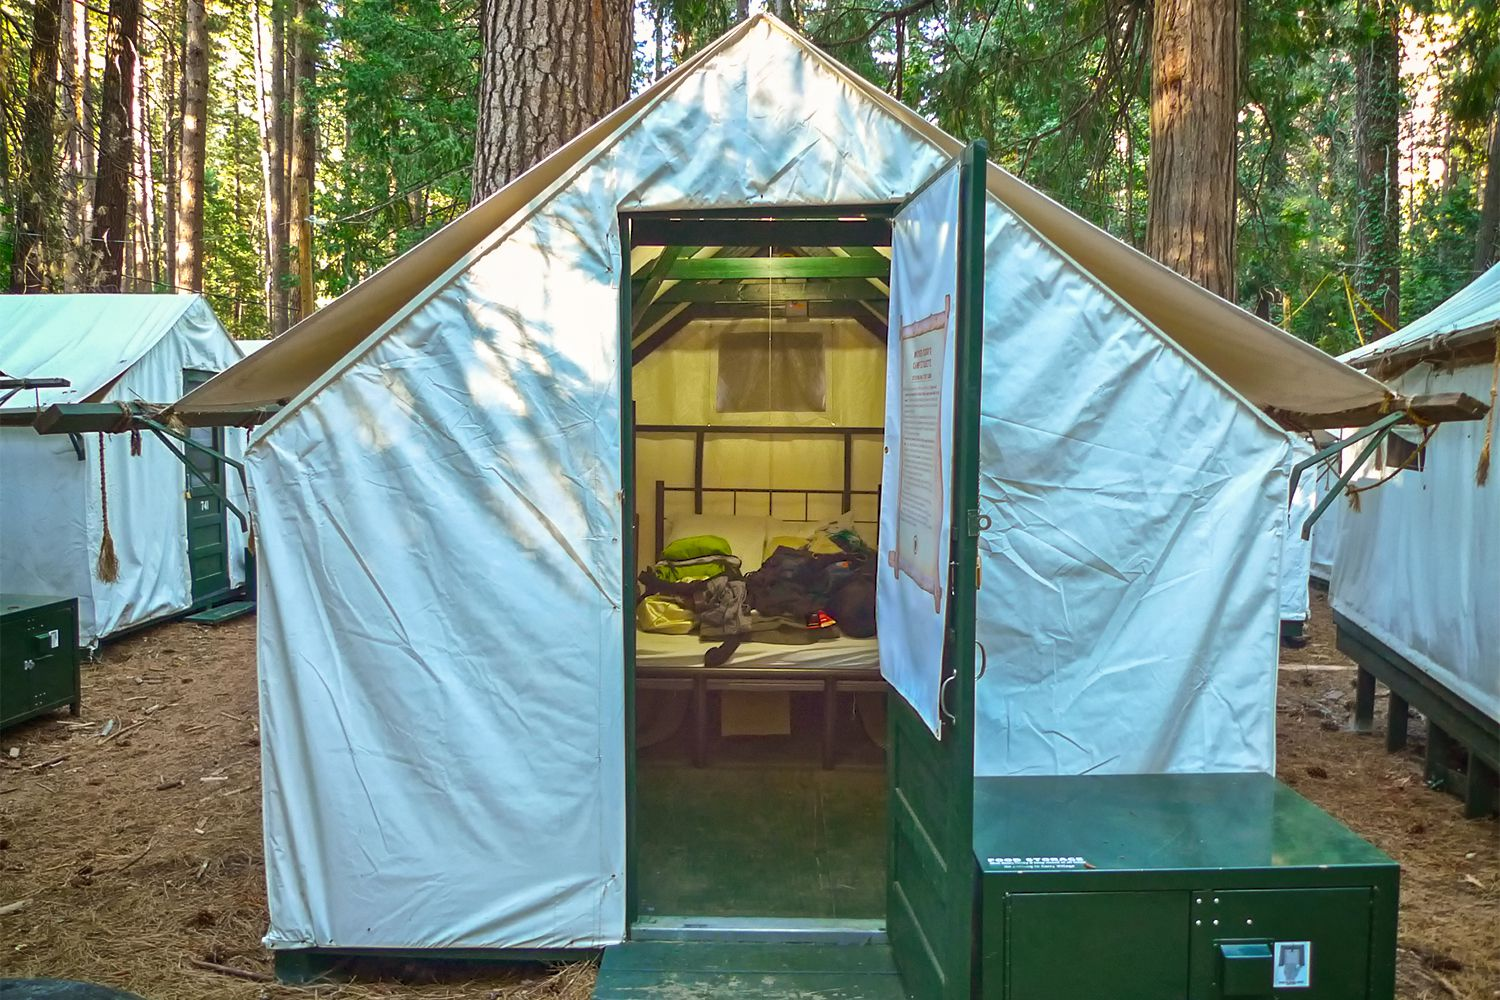 Yosemite tent cabins what you need to know for Yosemite park cabins